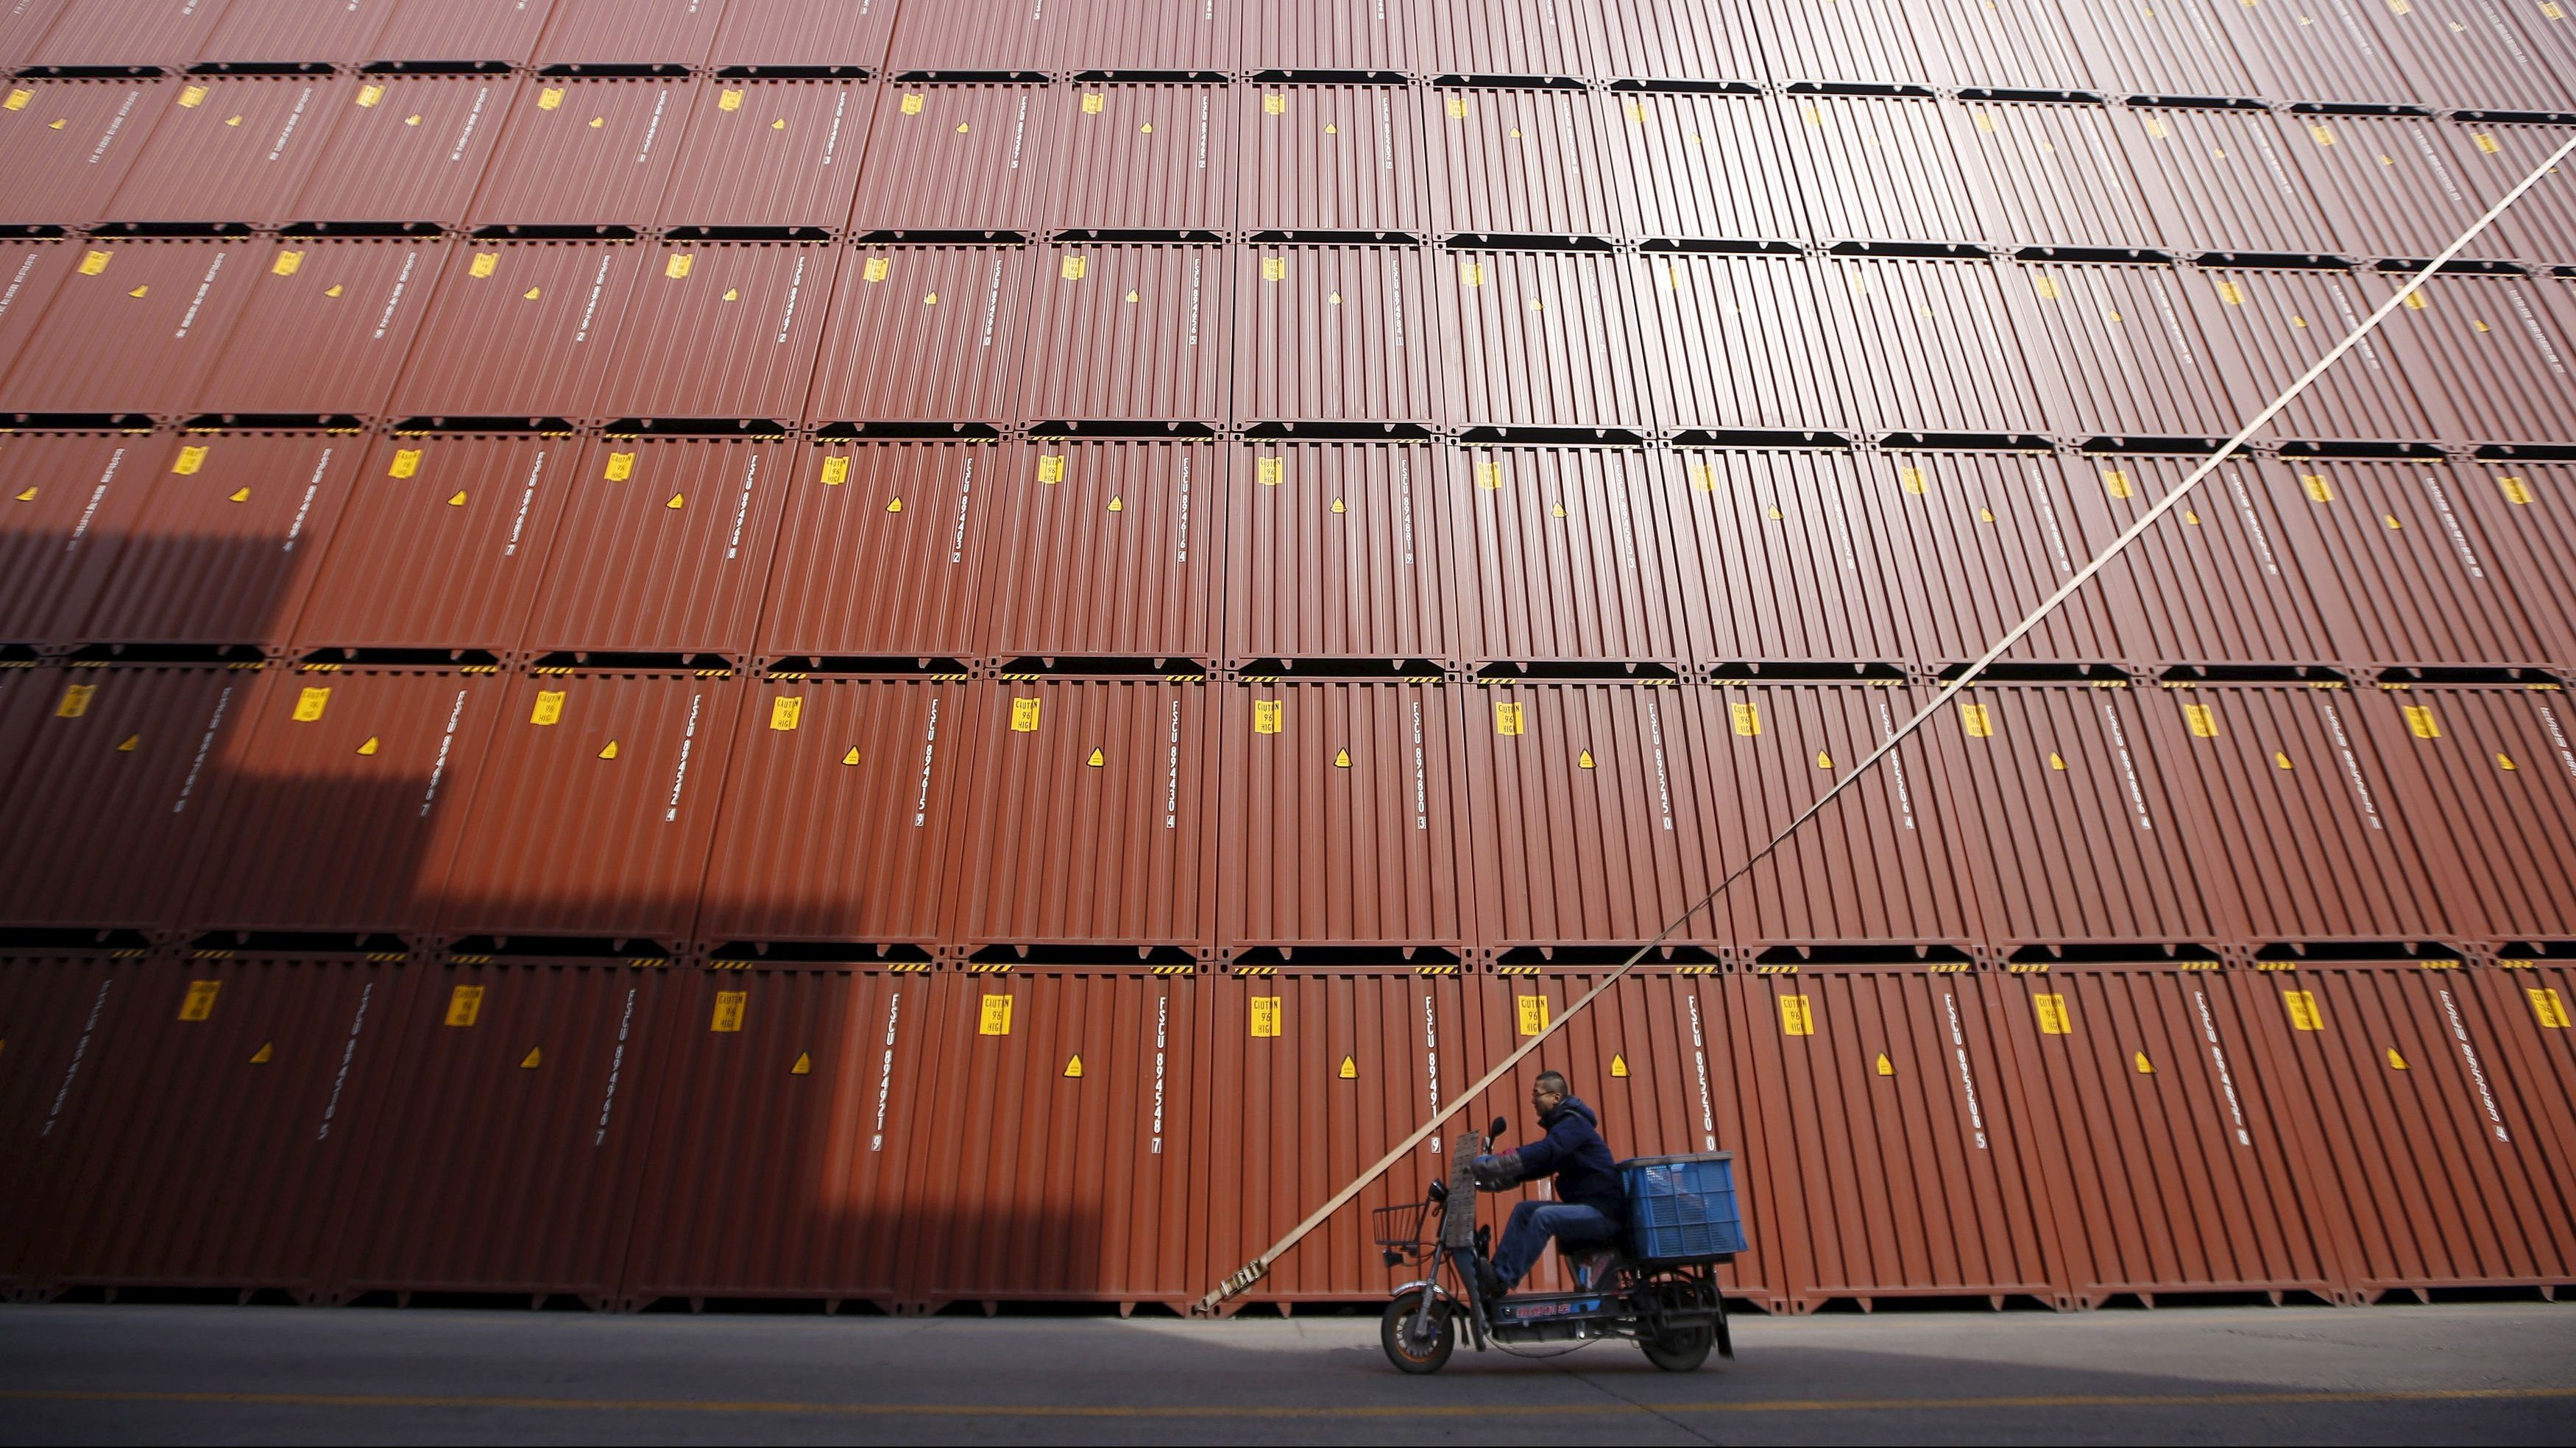 A man rides a vehicle past container boxes at a port in Shanghai